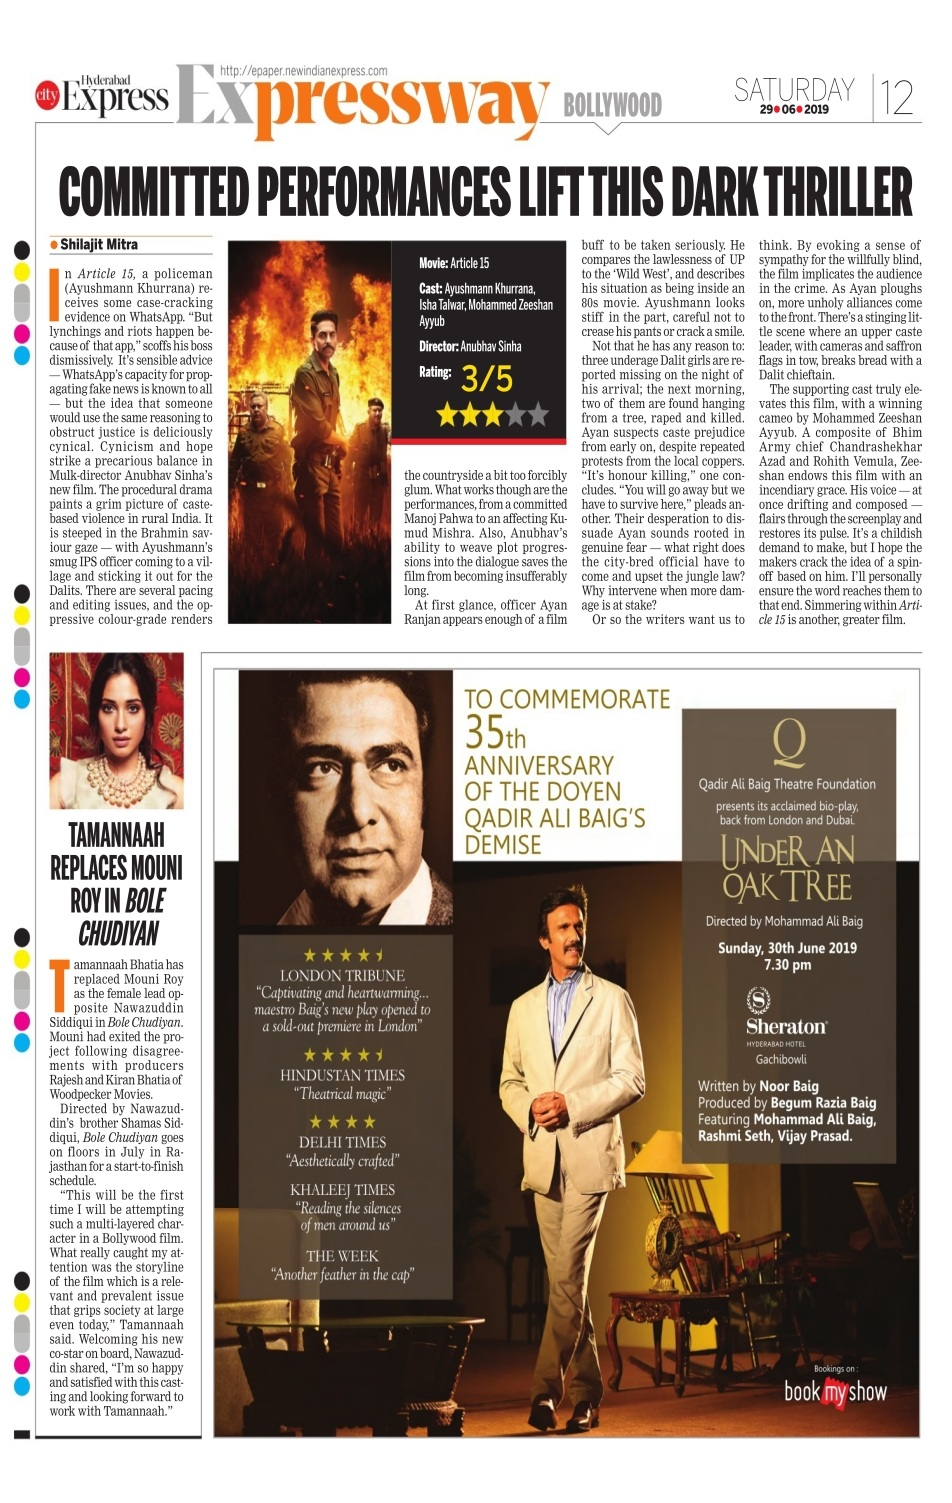 Indian Express -29 June